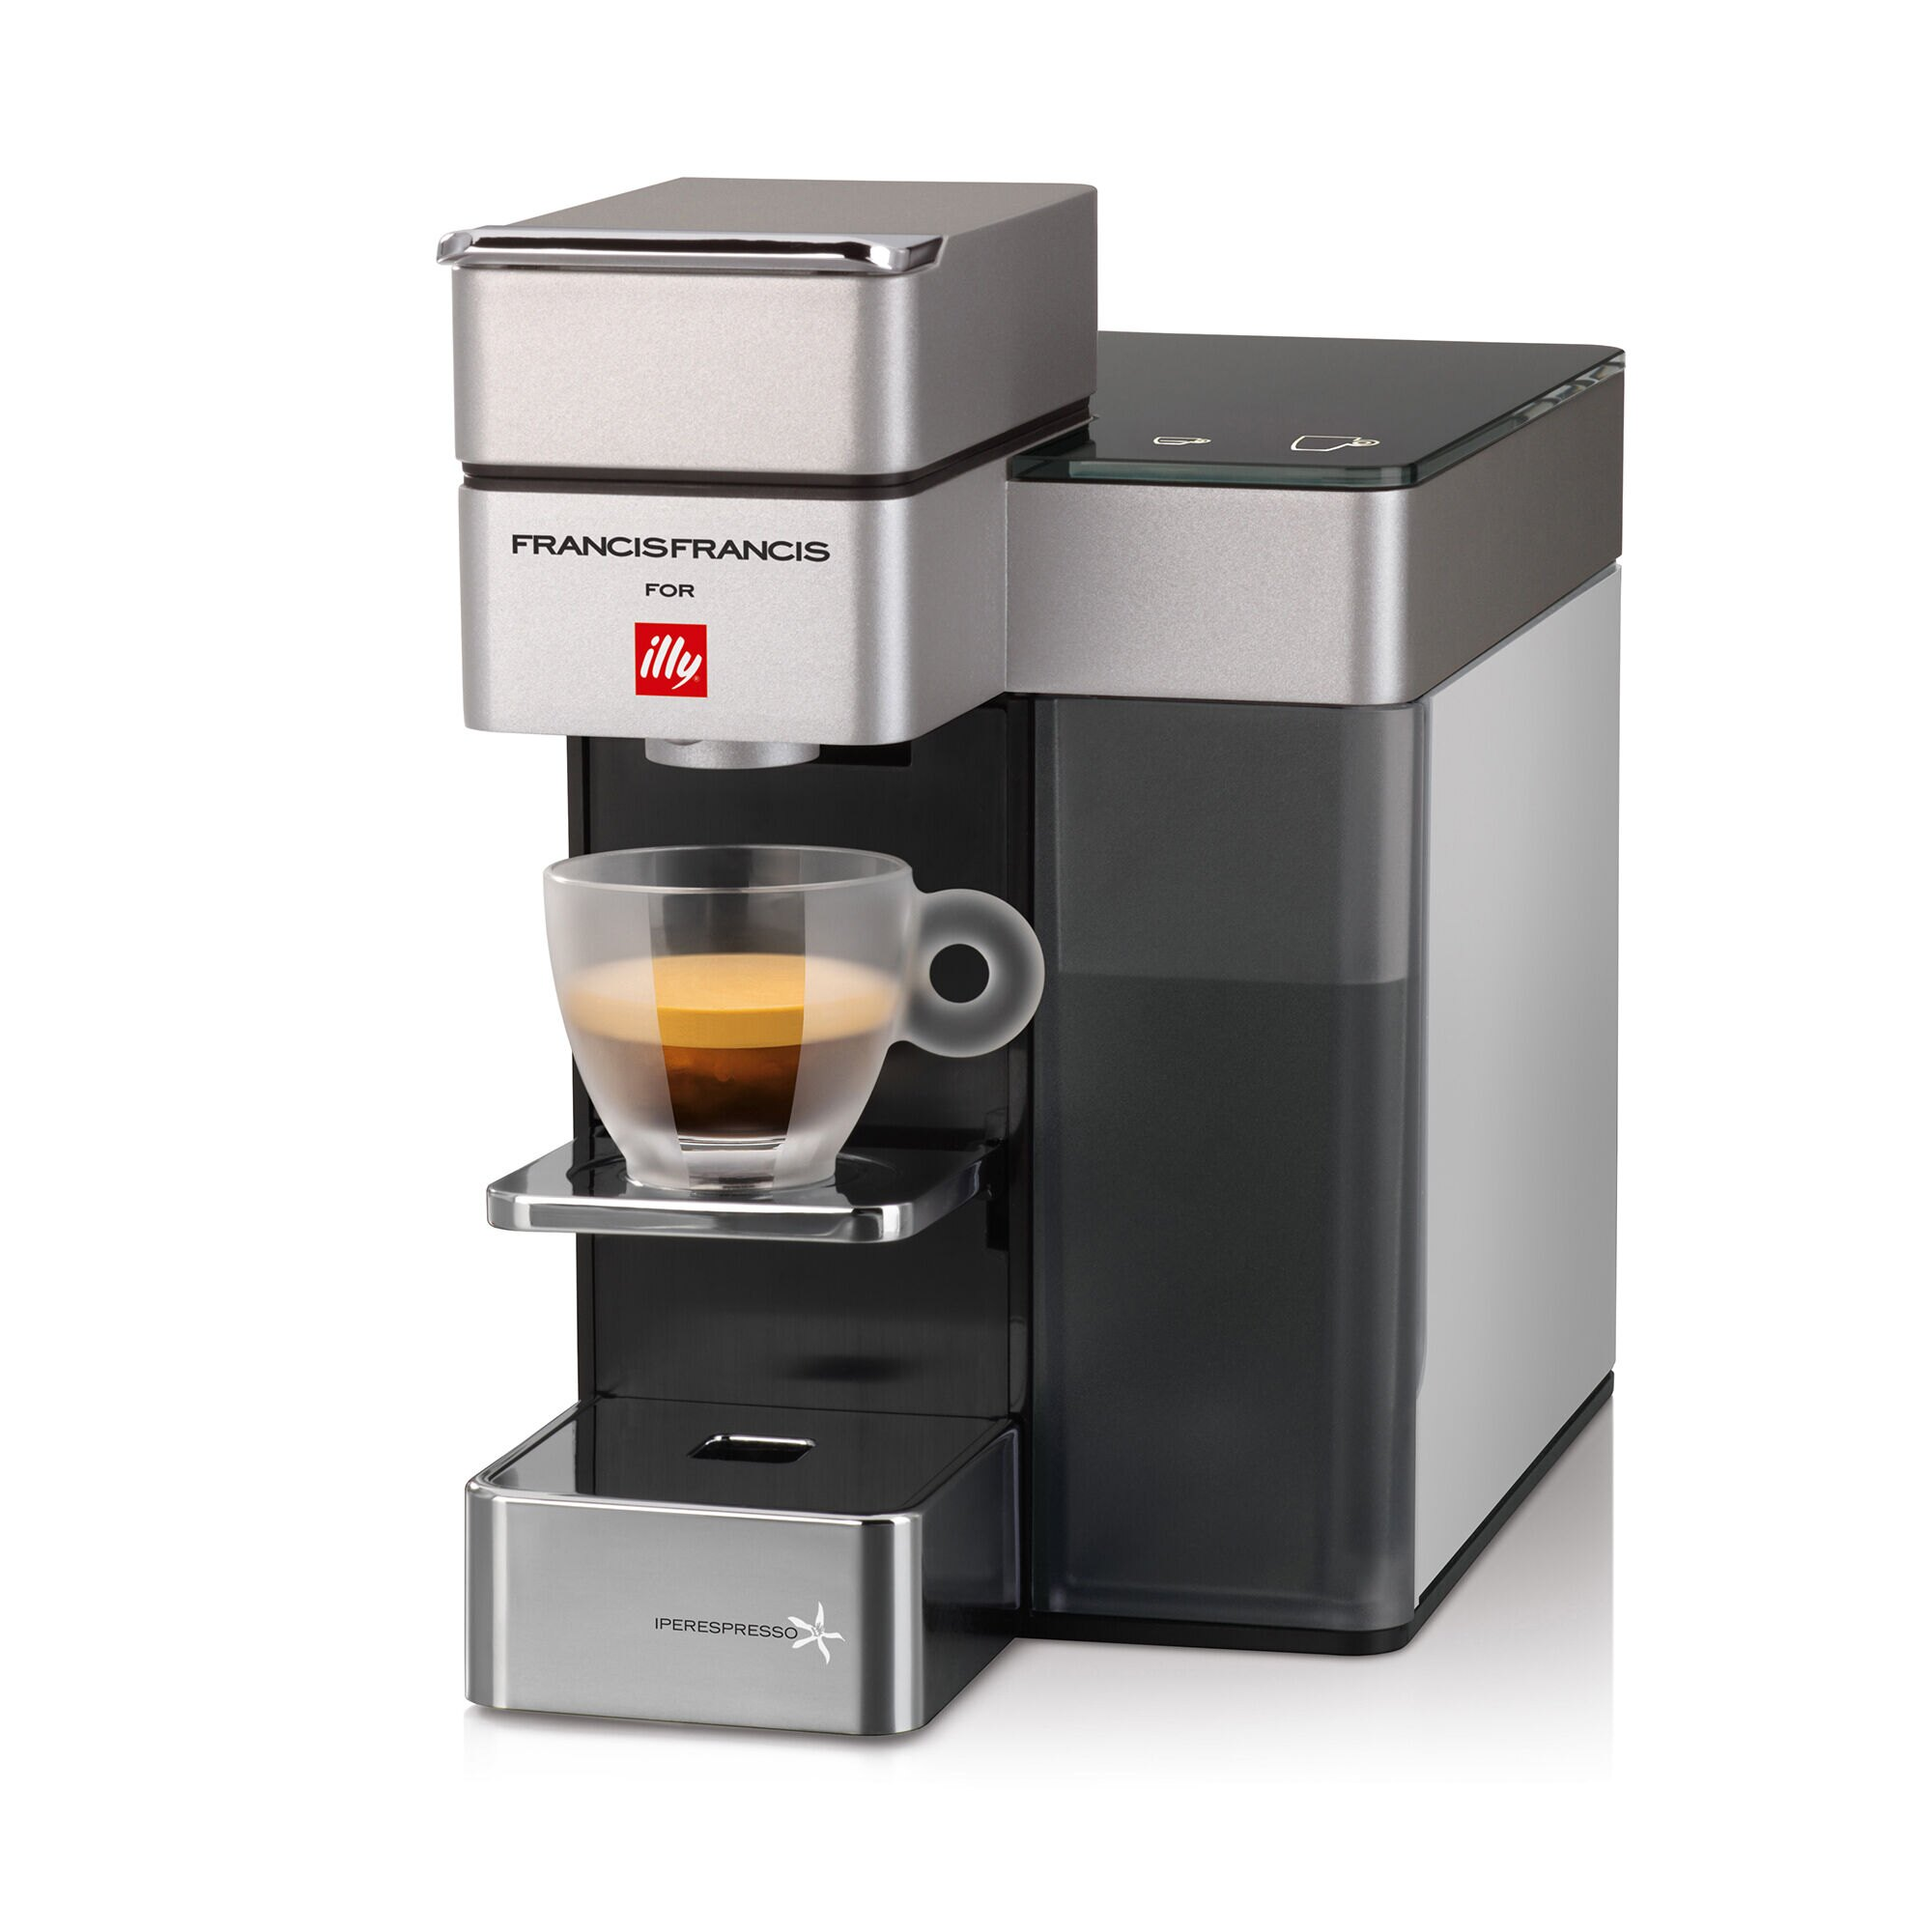 y5 iperespresso espresso coffee machine illy eshop. Black Bedroom Furniture Sets. Home Design Ideas